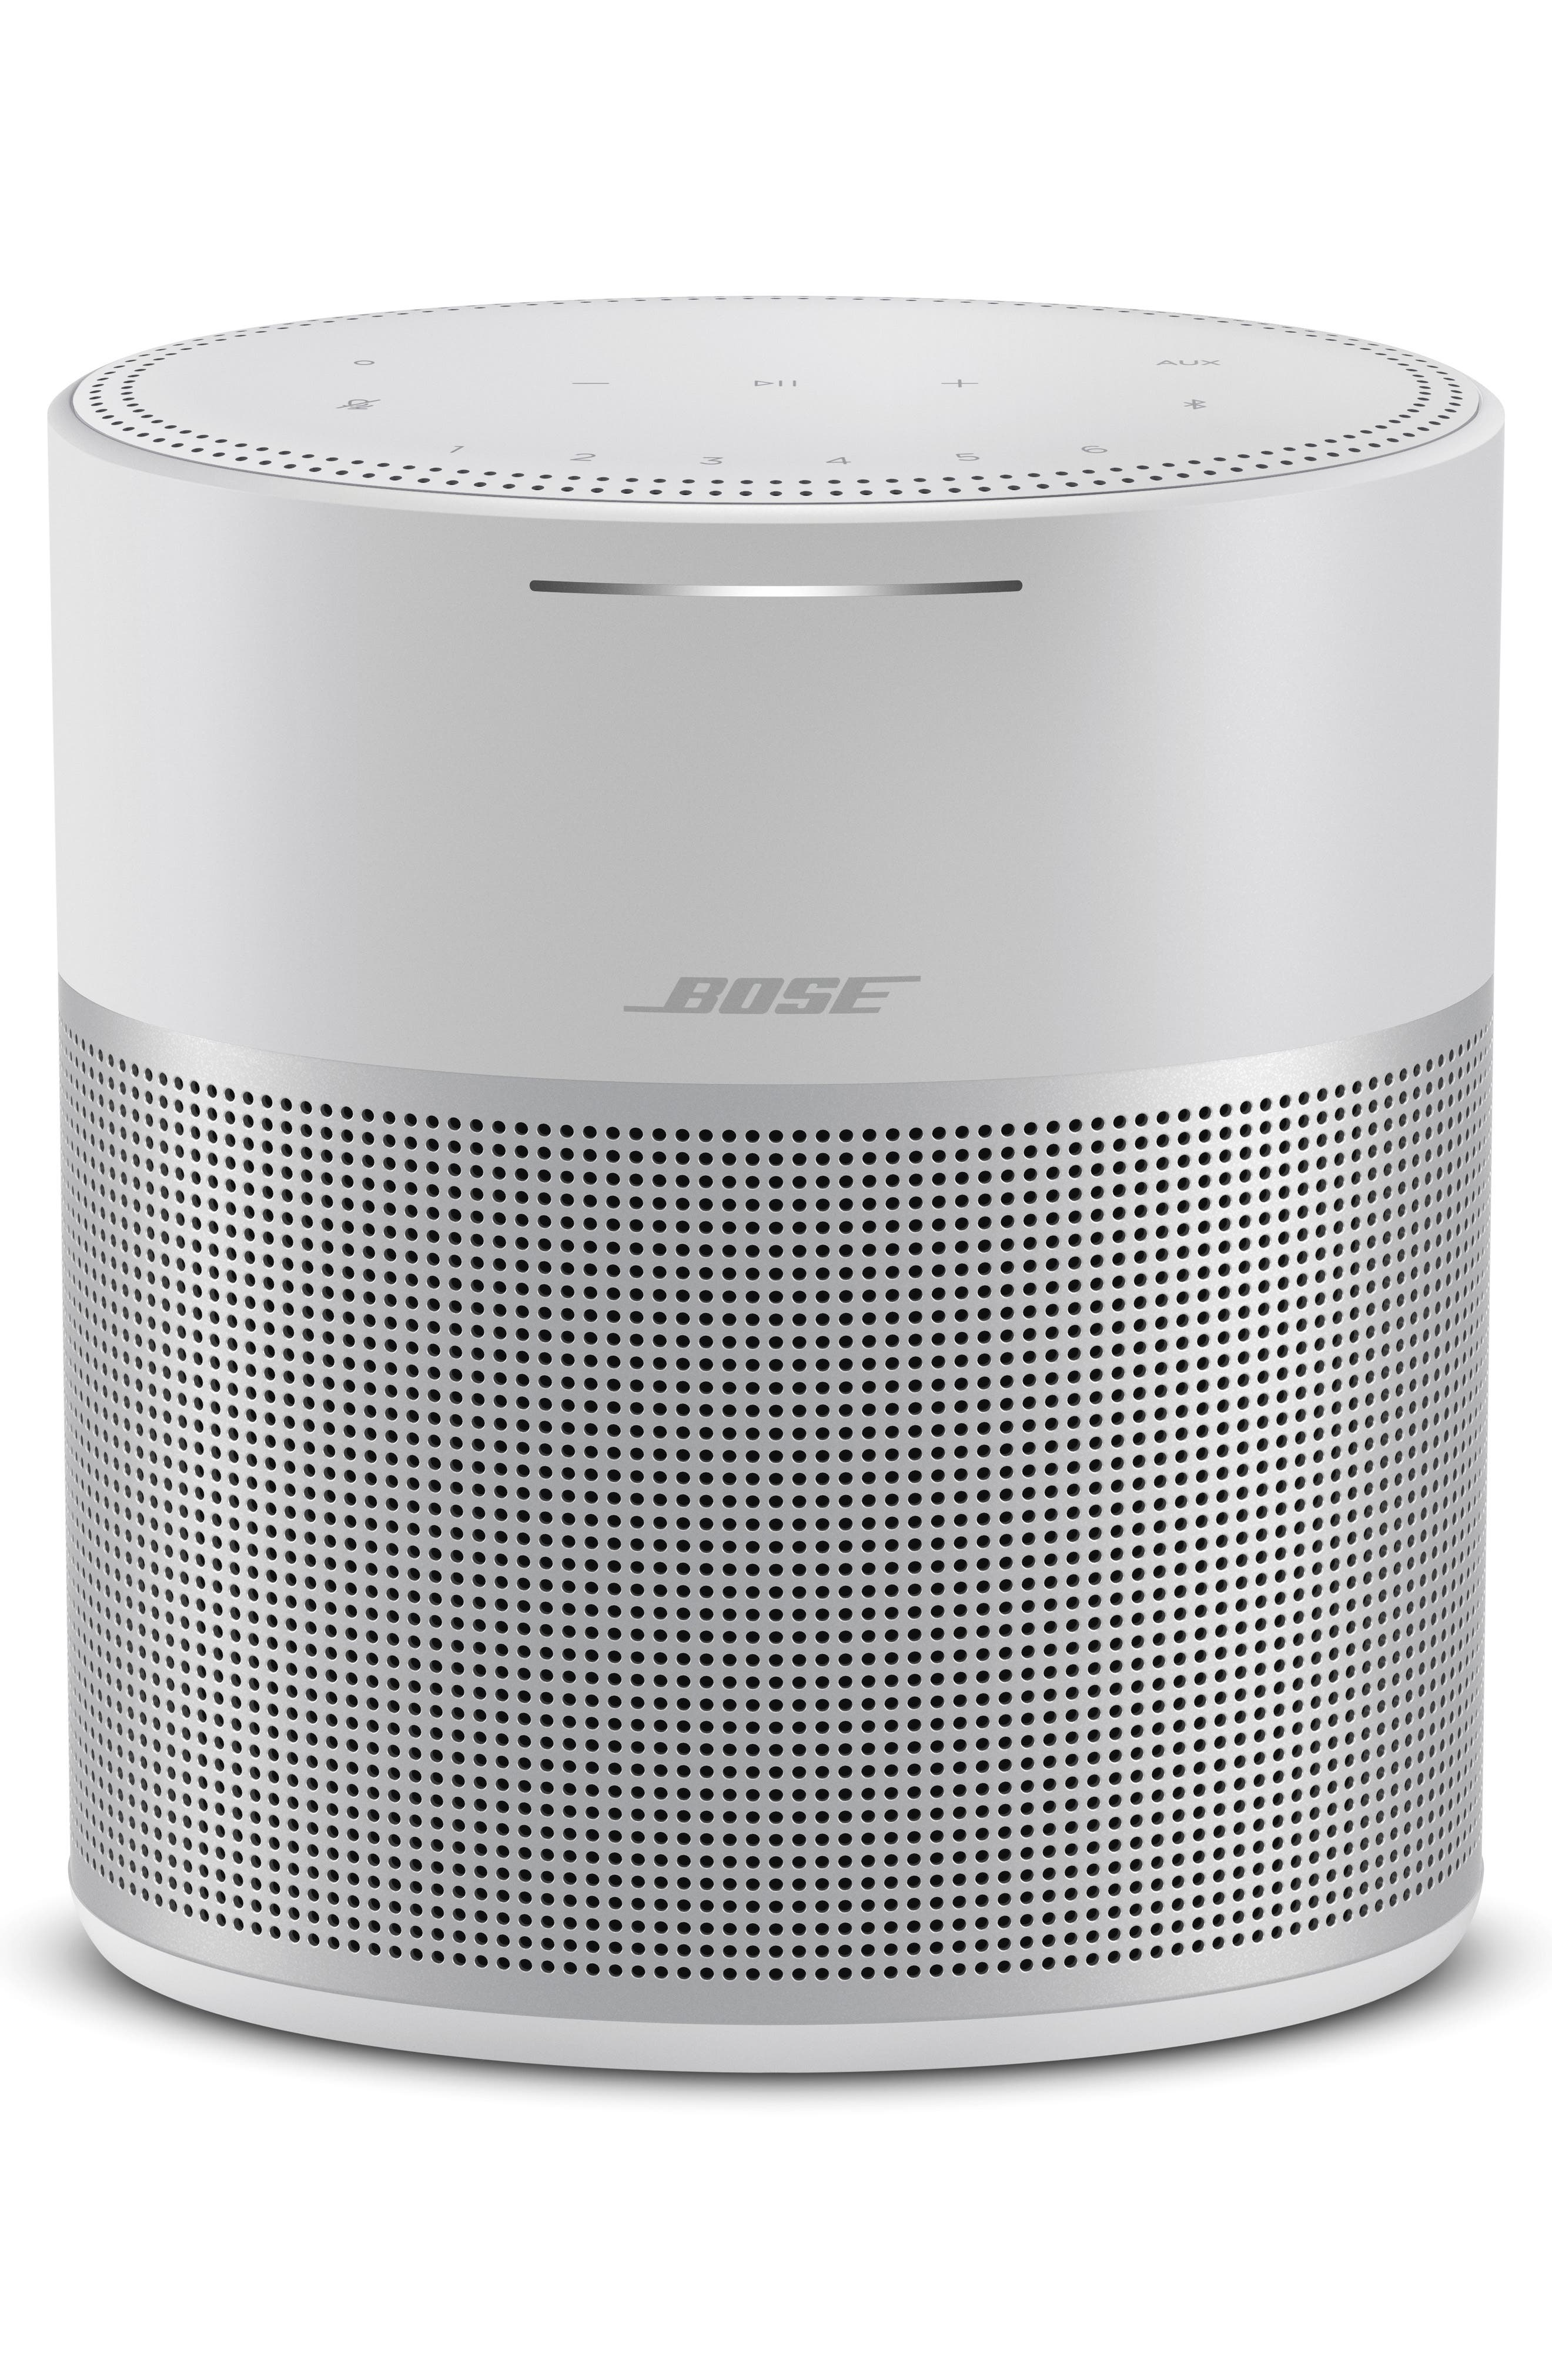 Get wall-to-wall sound from this sleek, wireless-enabled speaker that features built-in voice control from Amazon Alexa for easy-to-use convenience. Customizable tactile and mobile-device controls offer an additional layer of utility, and a seamless anodized-aluminum body makes it a refined addition to your decor. Speaker specs: Two custom drivers pointing in opposite directions for stereo sound, built-in voice control, custom-designed